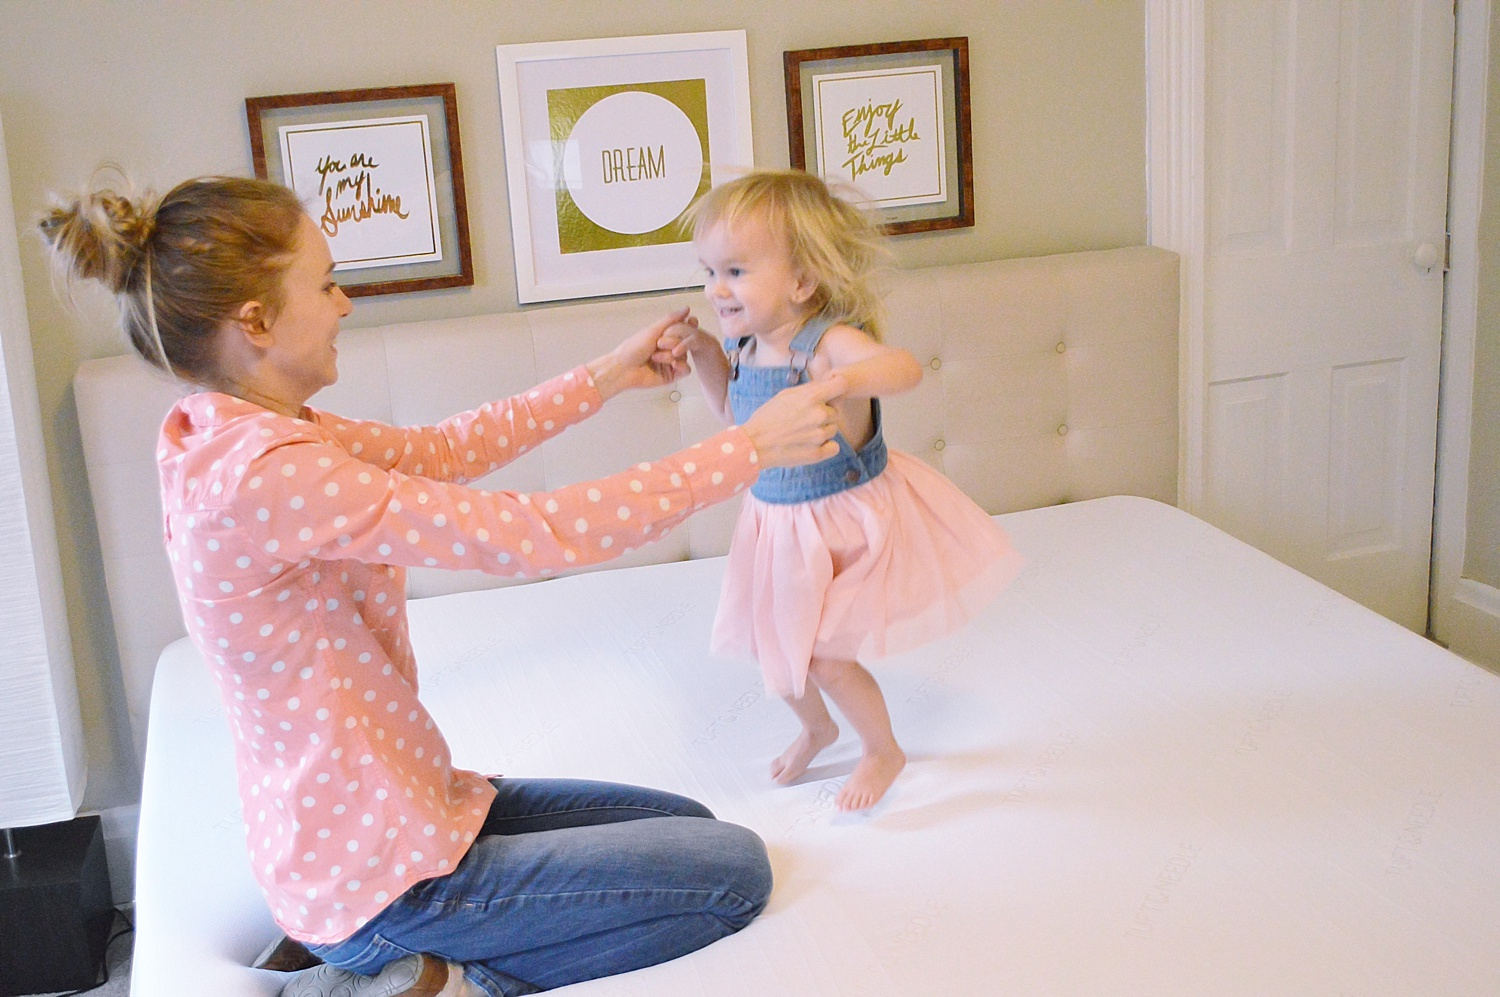 Tuft & Needle Mattress Review by Rachael Burgess